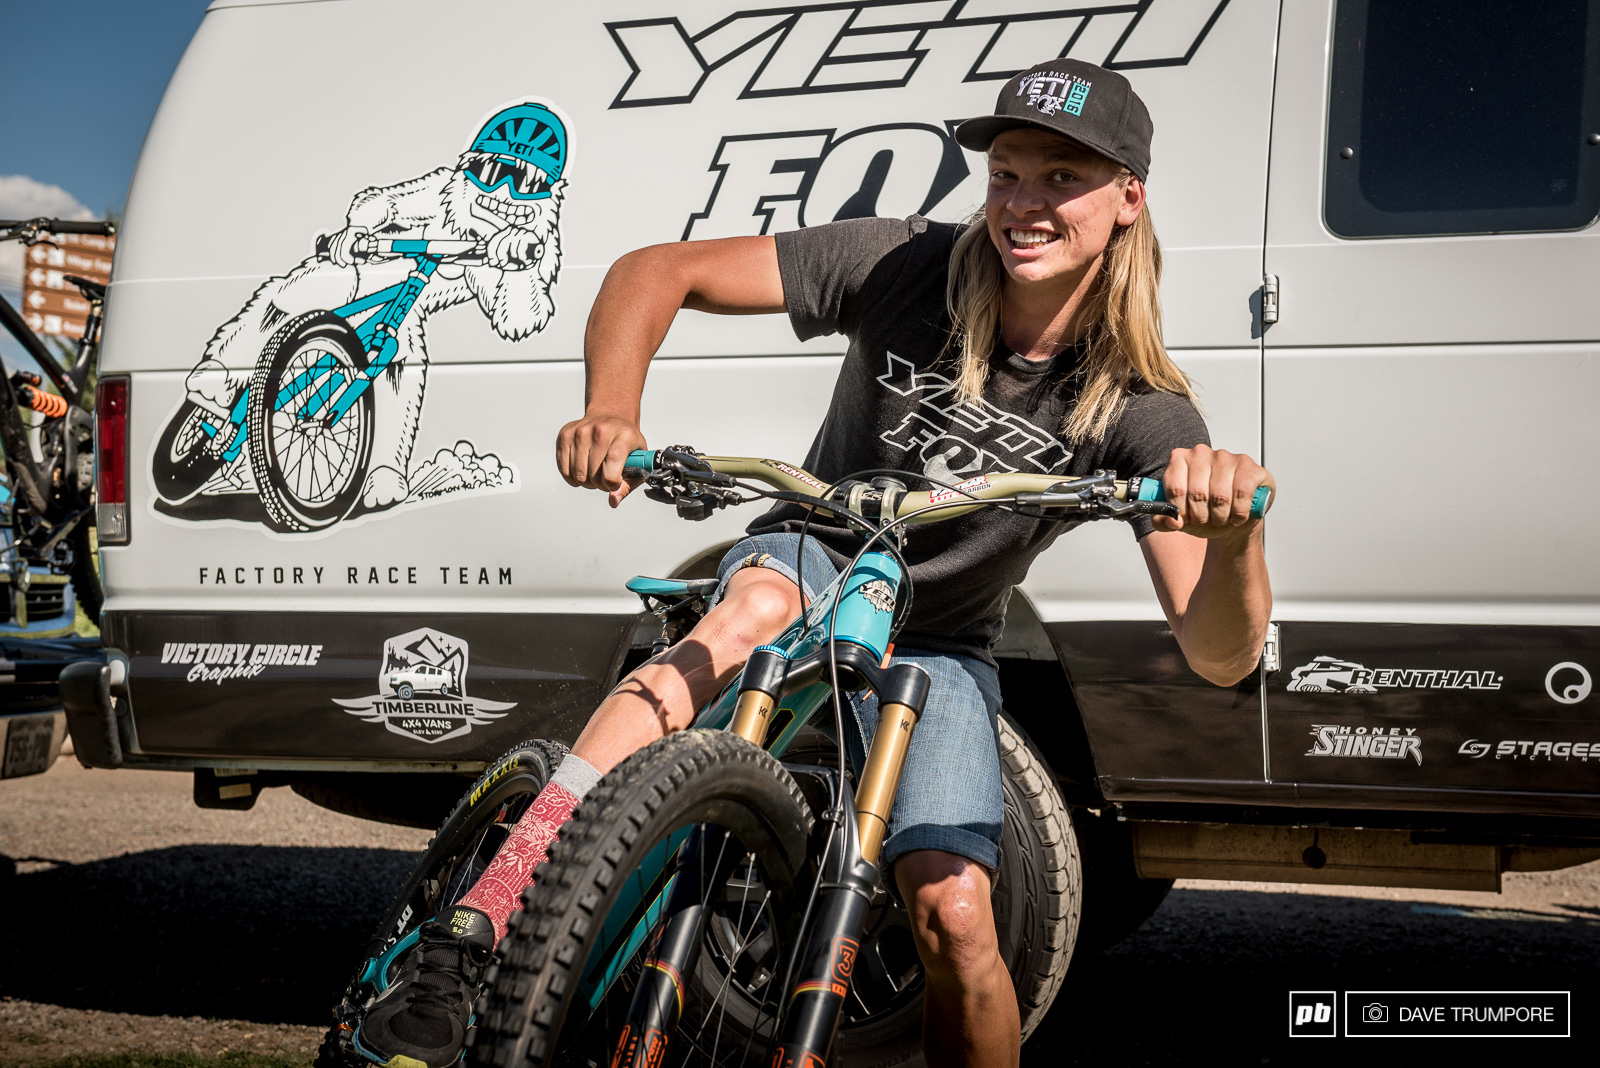 New wheels and new van graphics with Cody Kelley in the Yeti pits.